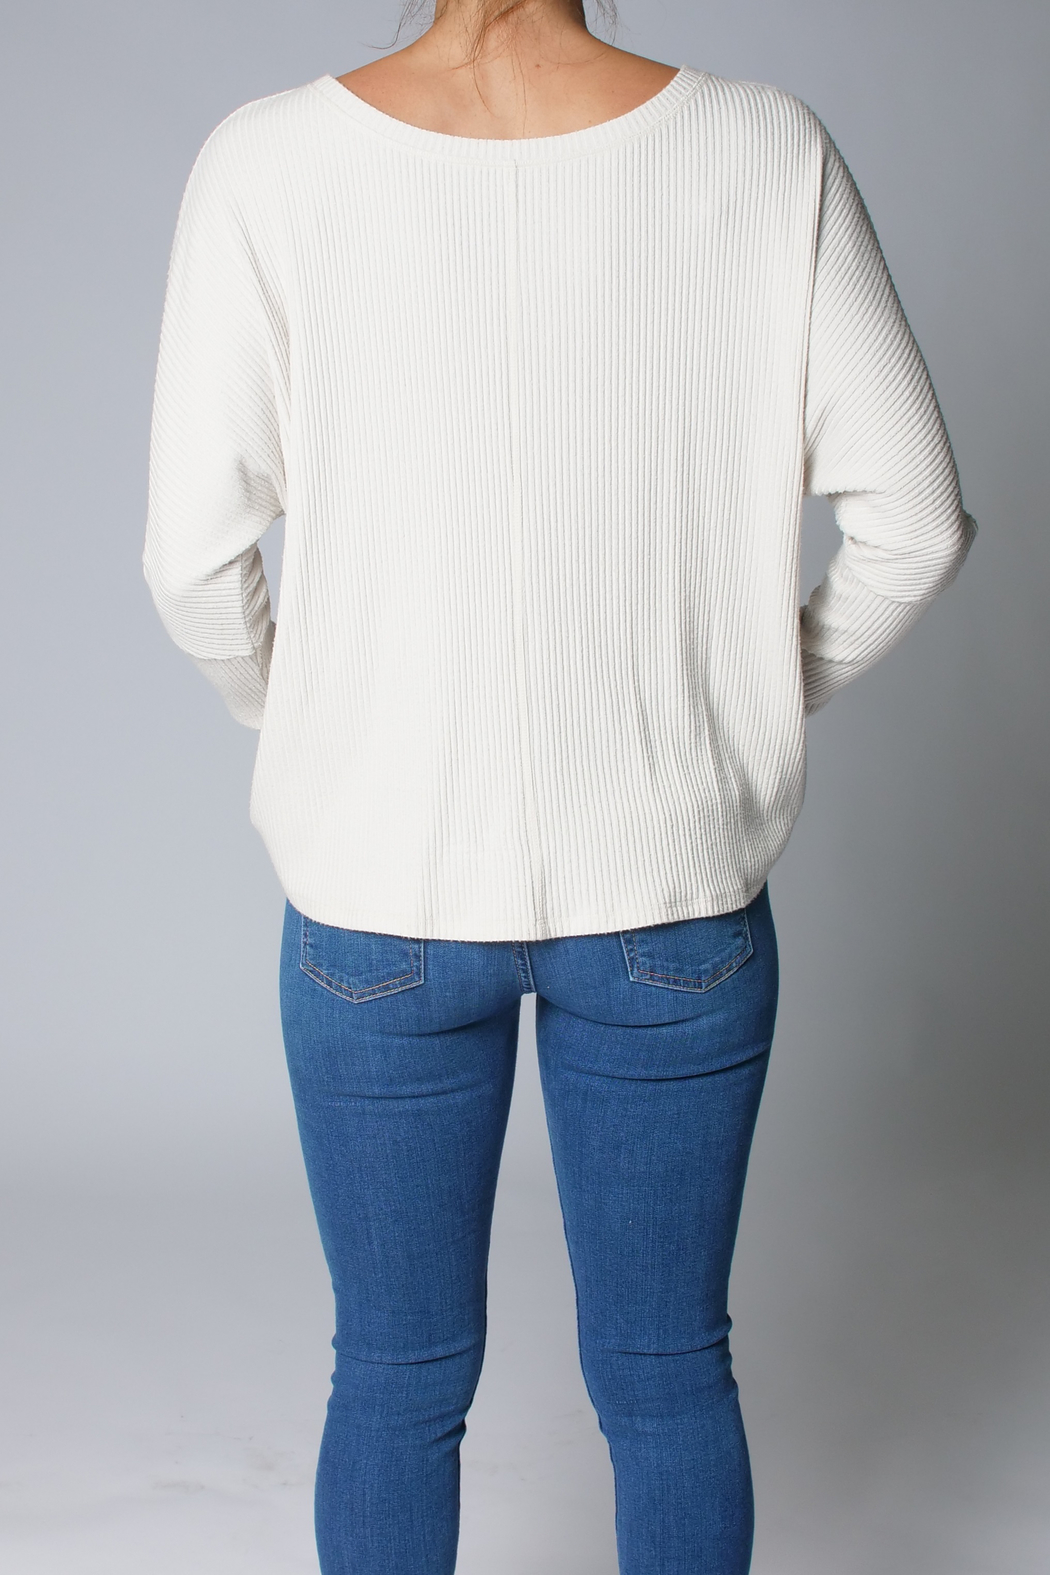 Heather McKinley Dolman Sleeve Top - Side Cropped Image